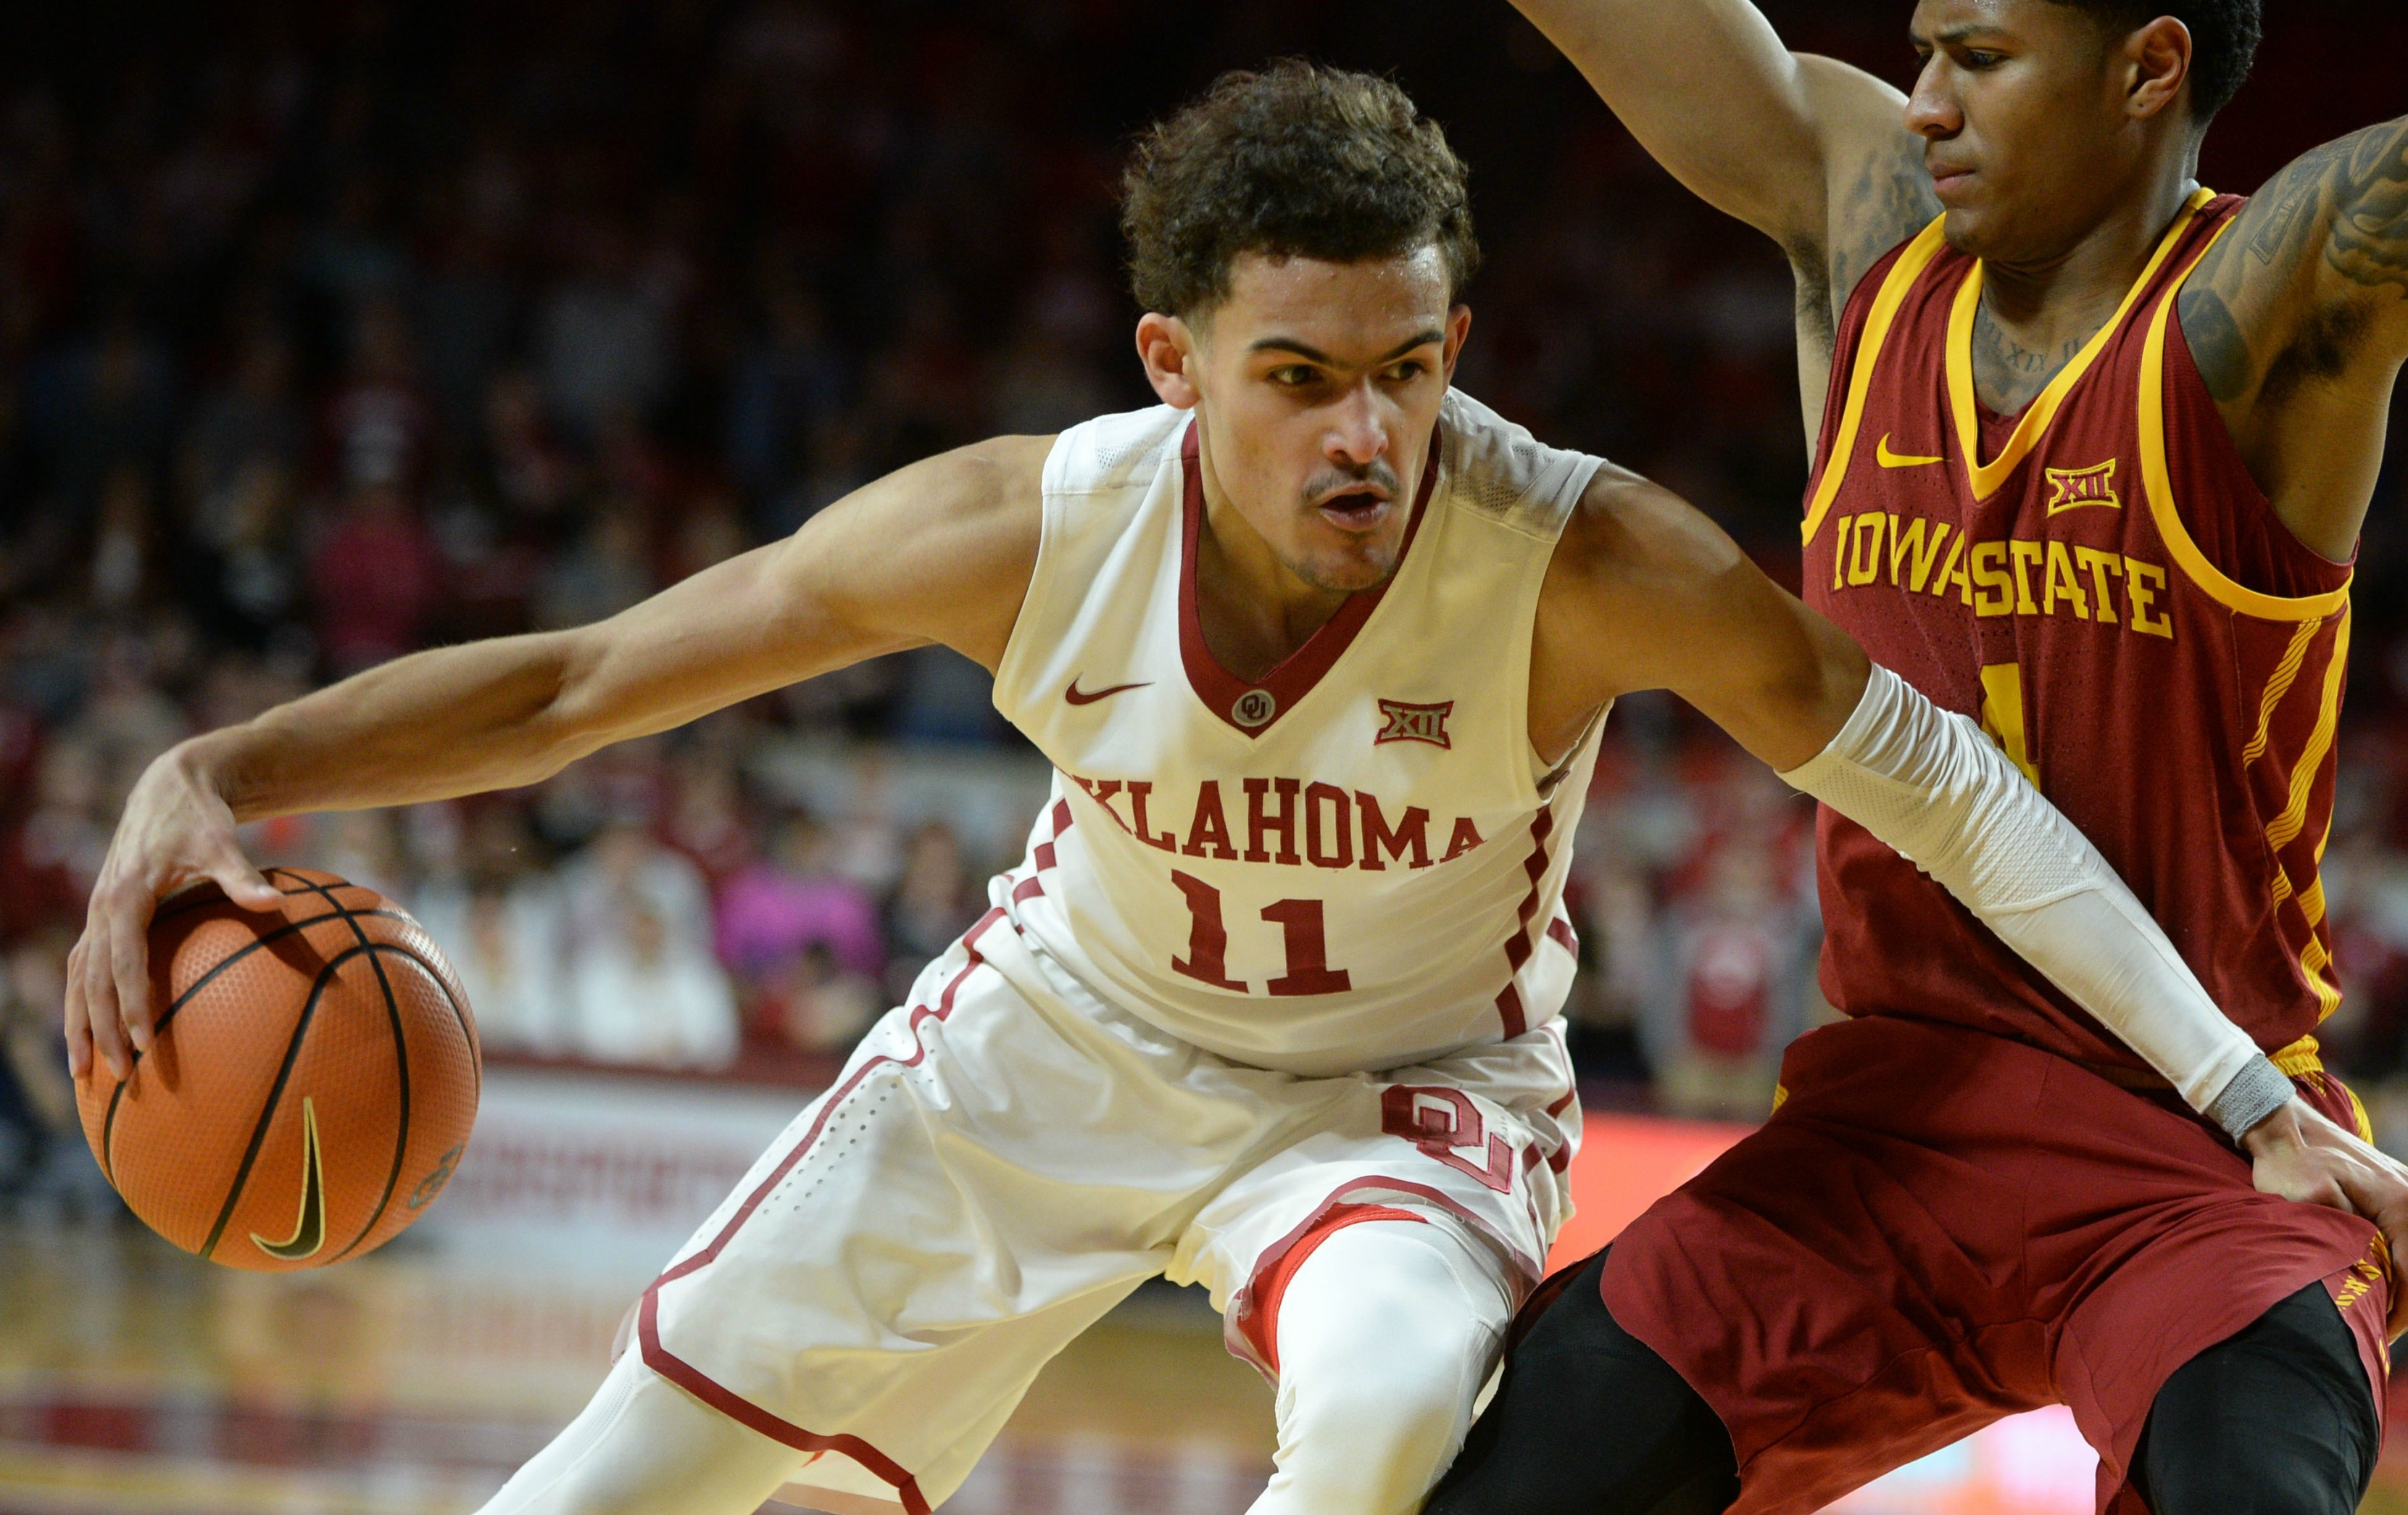 937d1680b05b Oklahoma freshman Trae Young revels in role of hometown hero